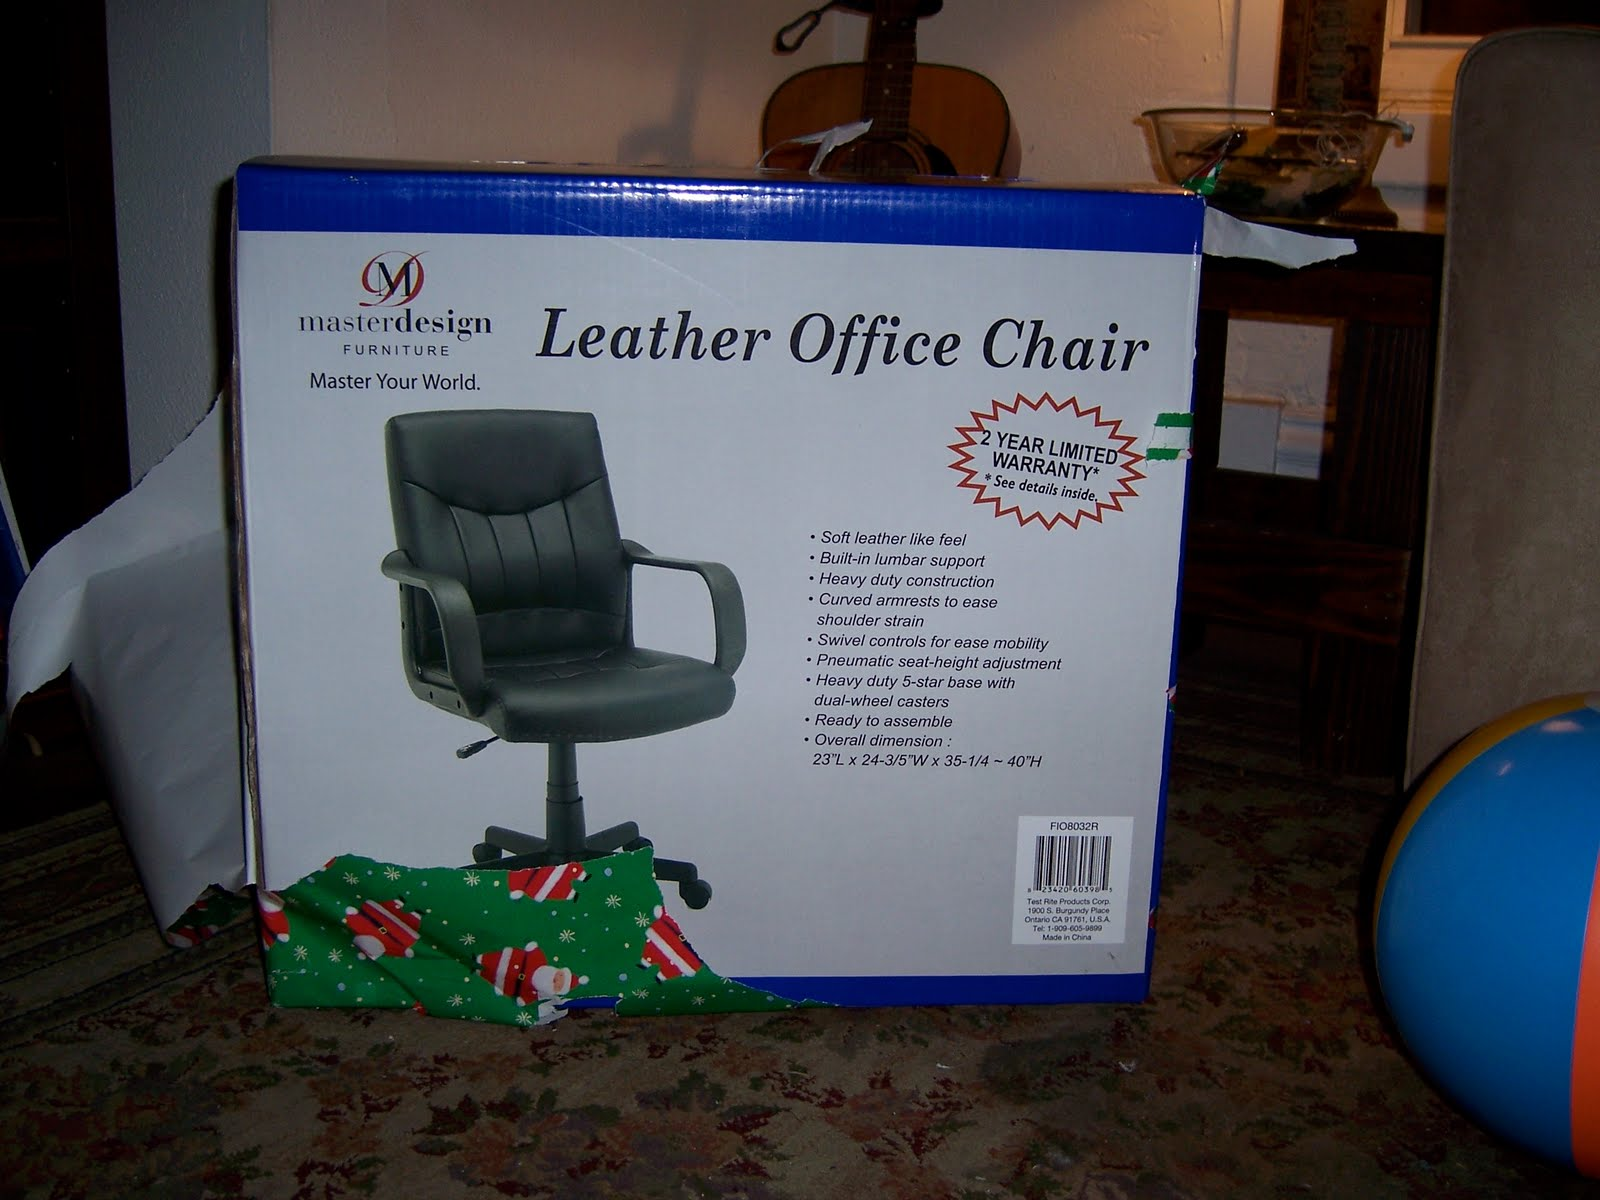 Leather Office Chair.jpg